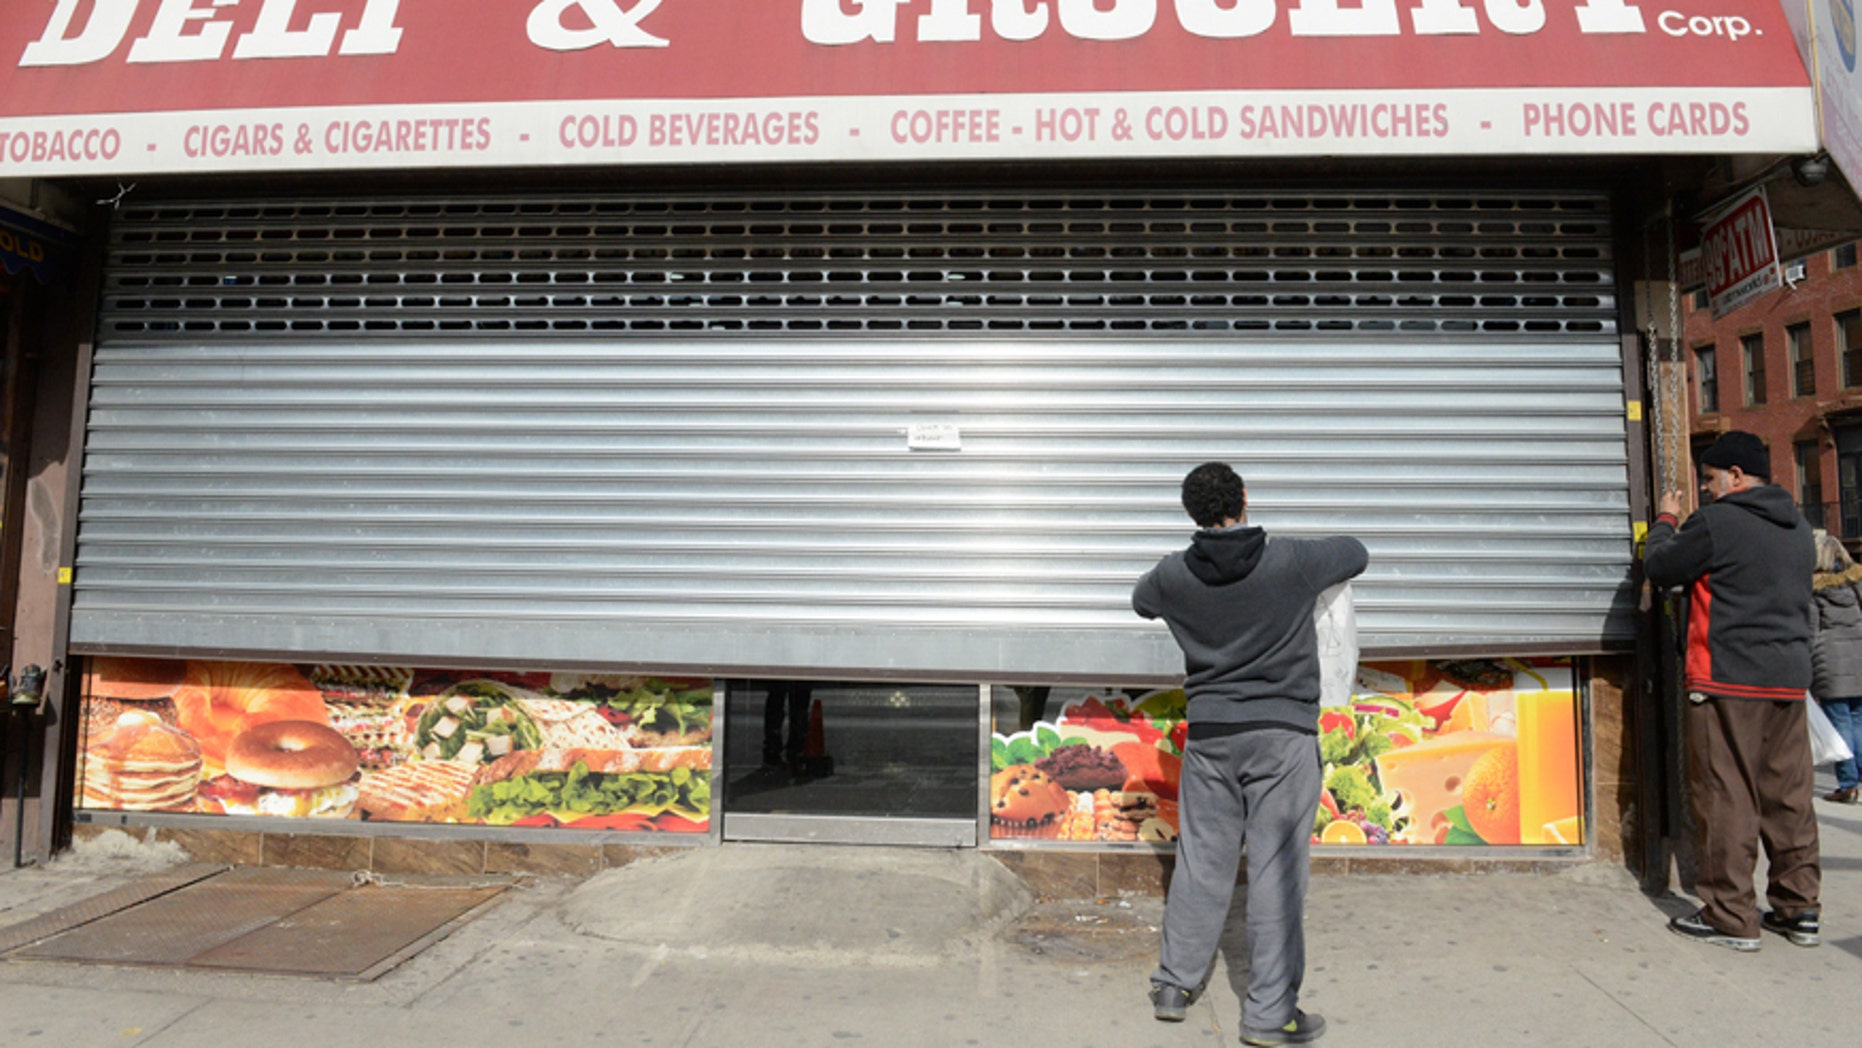 File photo: Two men close their bodega during a Yemeni protest against President Donald Trump's travel ban, in the Brooklyn borough of New York City, U.S. February 2, 2017. (REUTERS/Stephanie Keith)